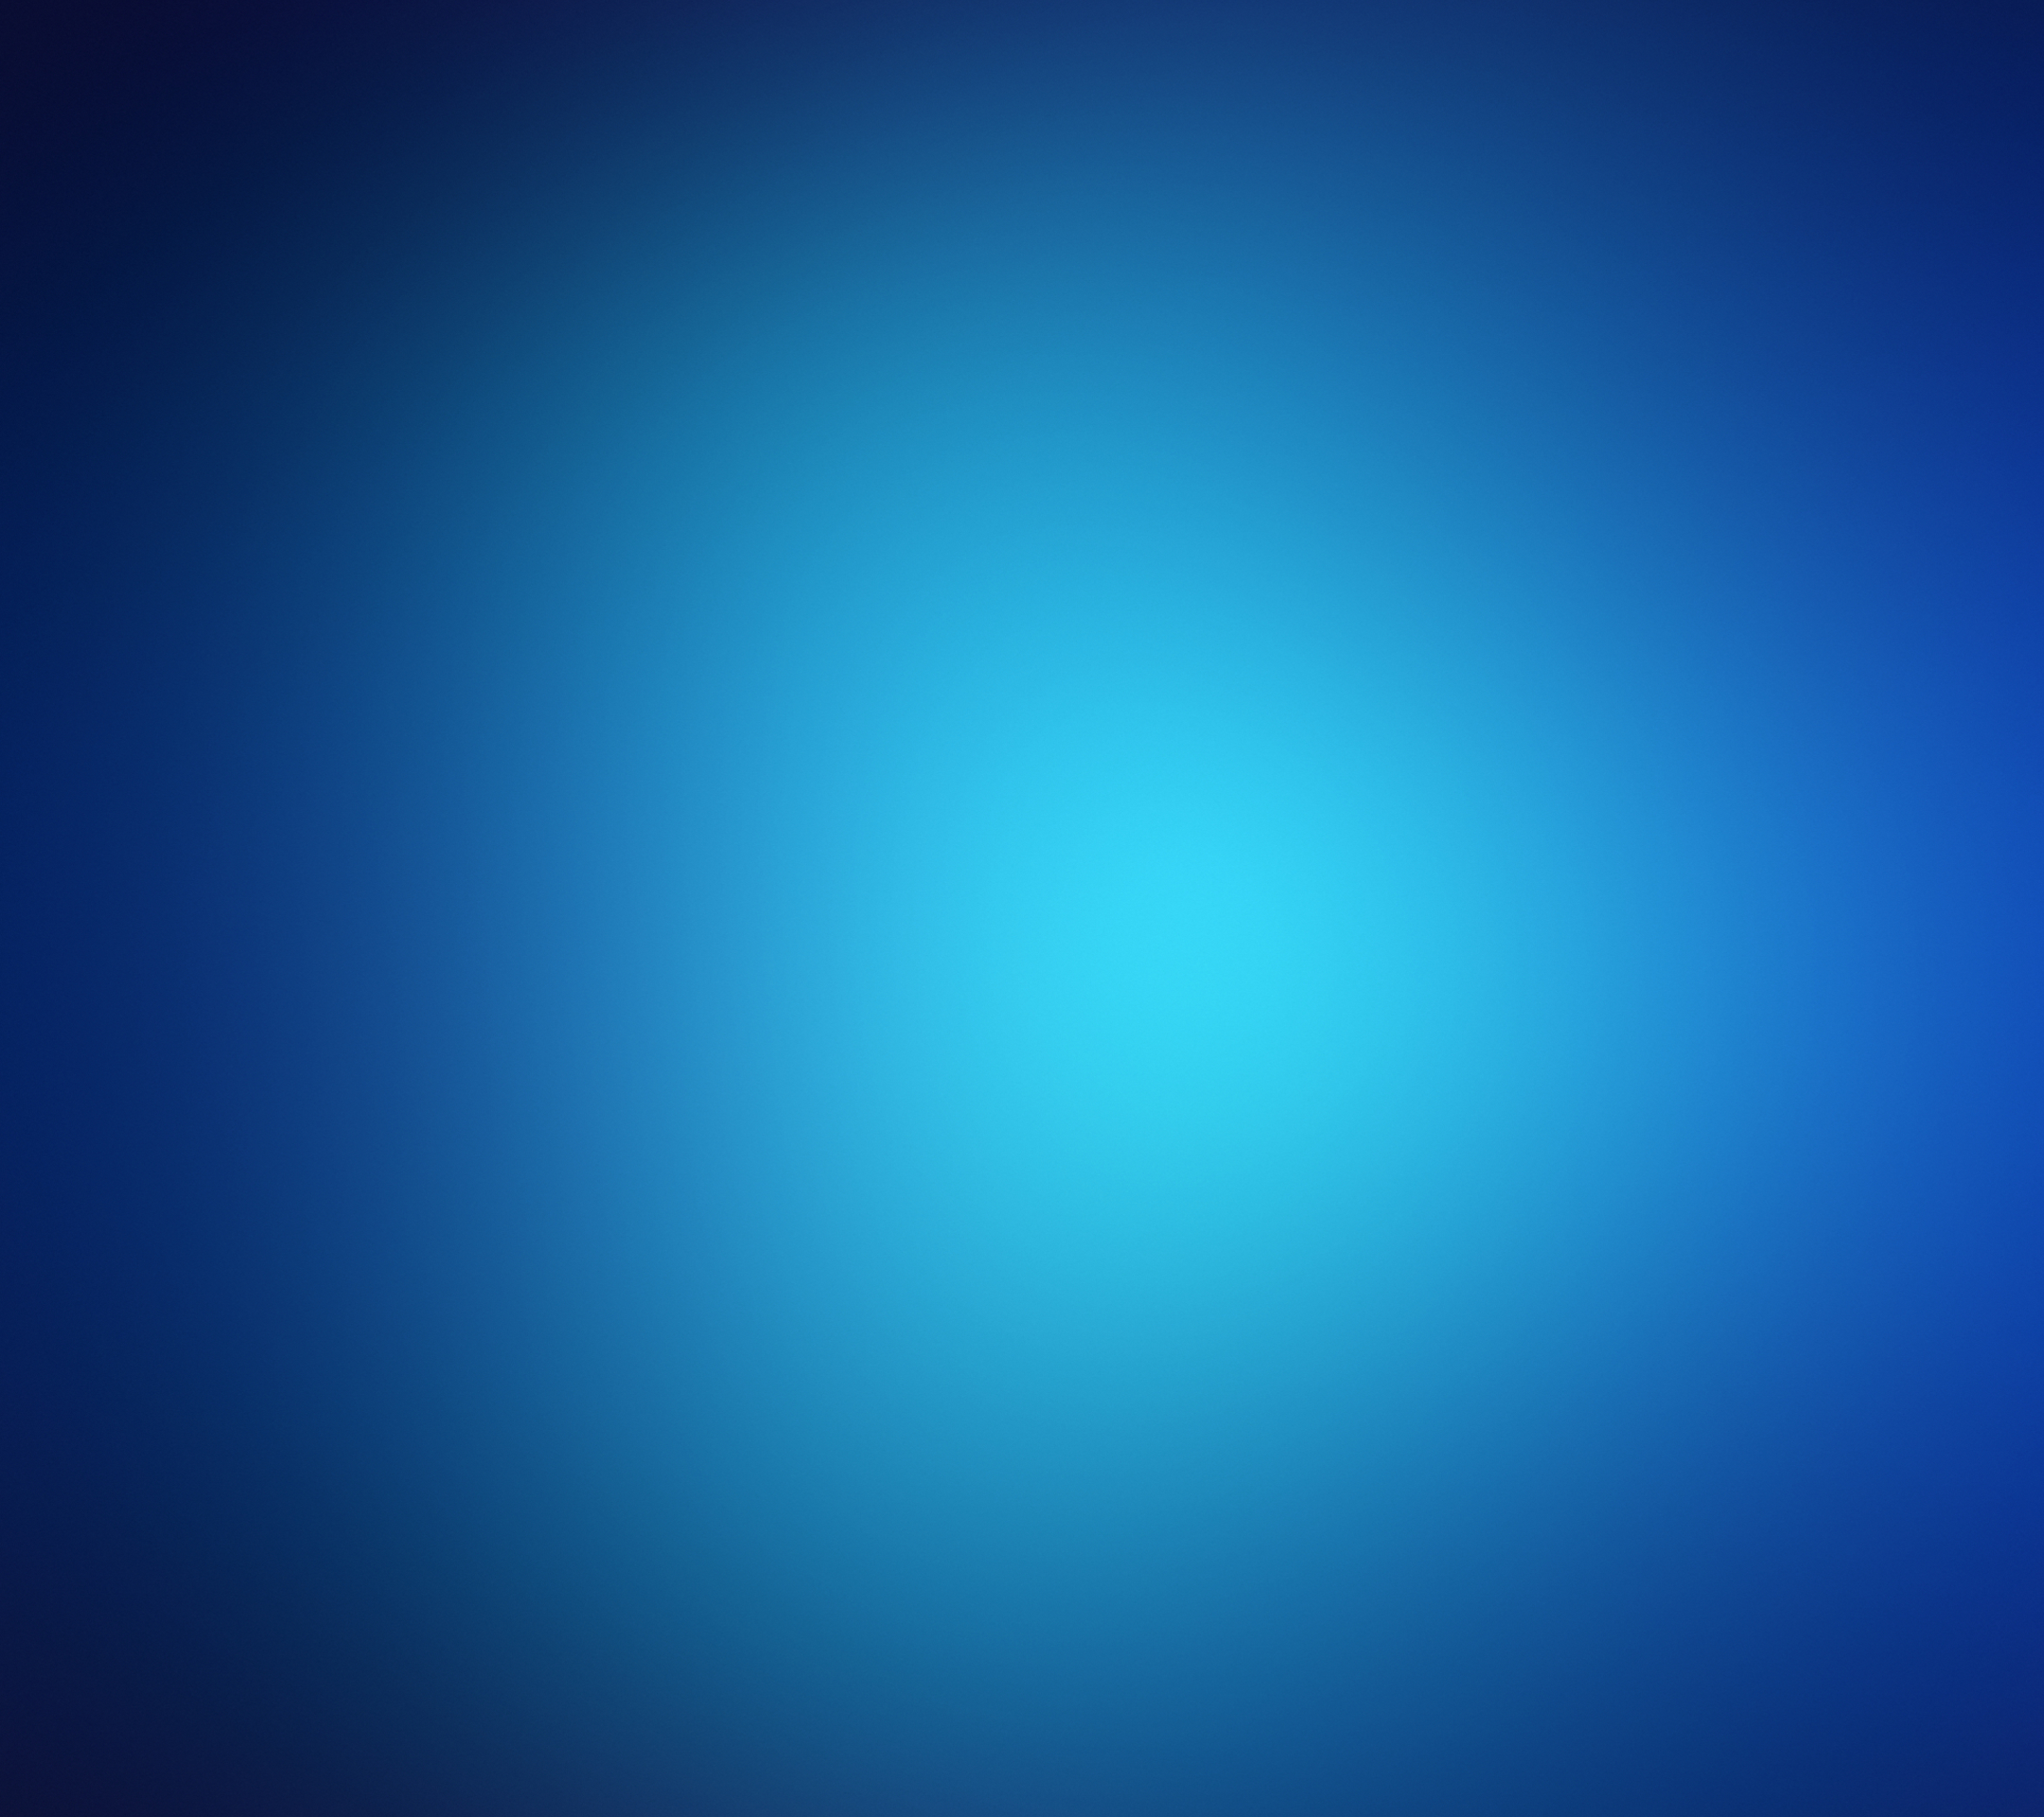 Galaxy S4 Stock Wallpaper Main